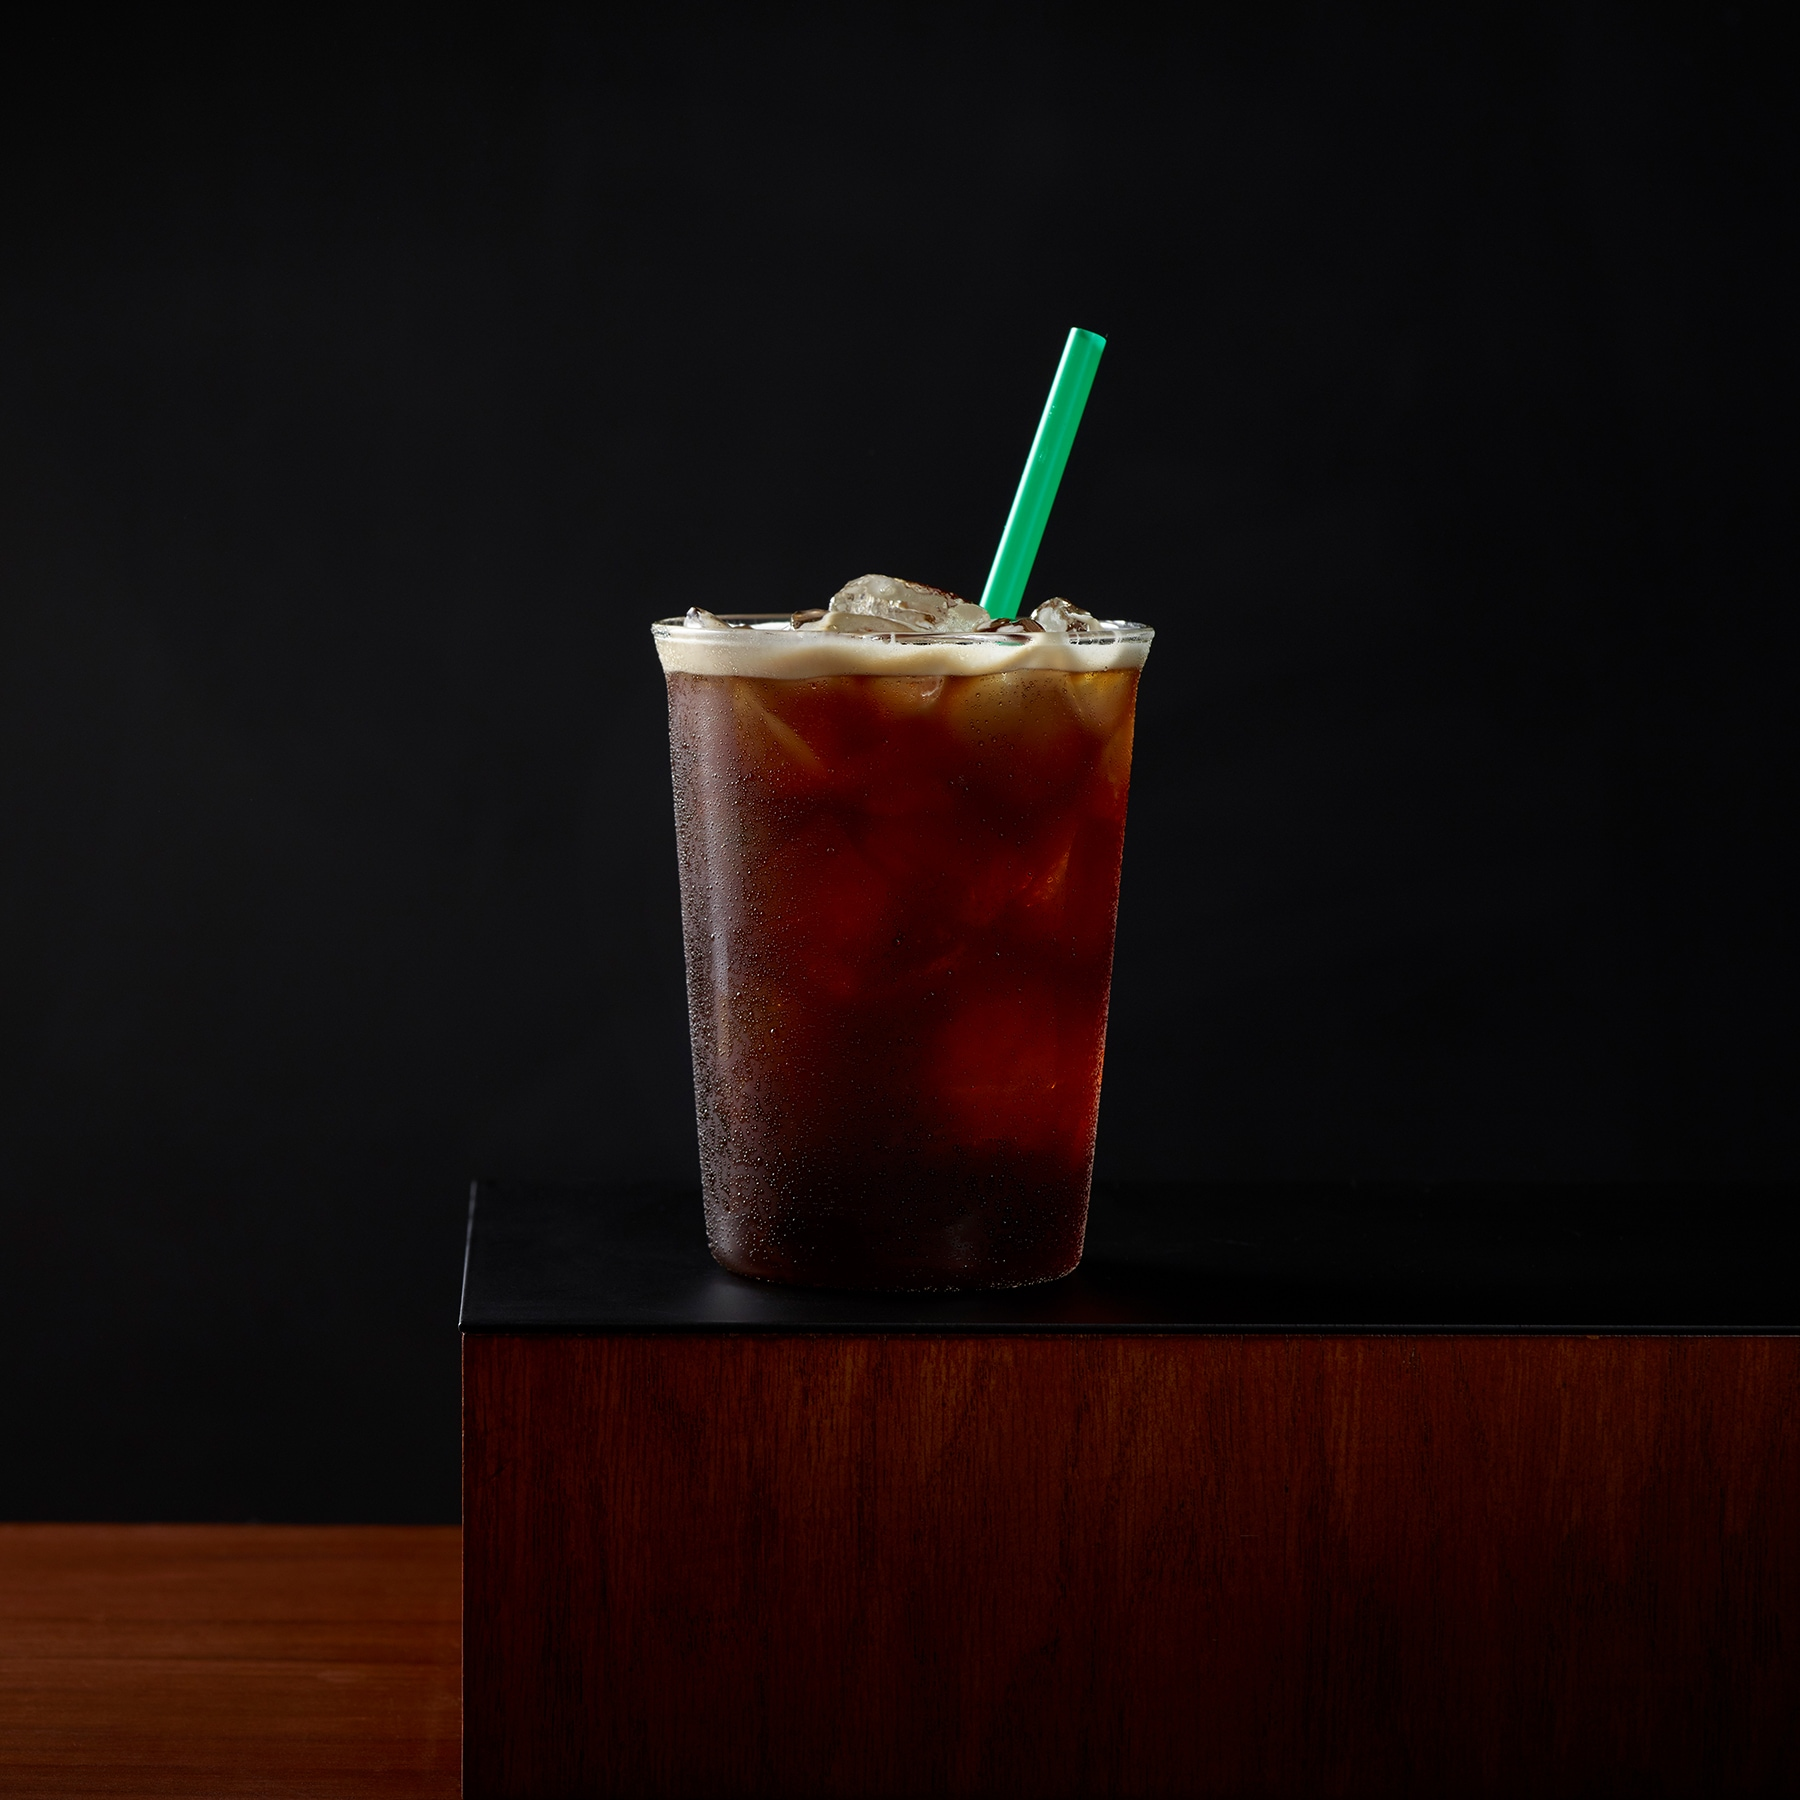 Coffee Americano Starbucks Iced Caffè Americano Starbucks Coffee Company